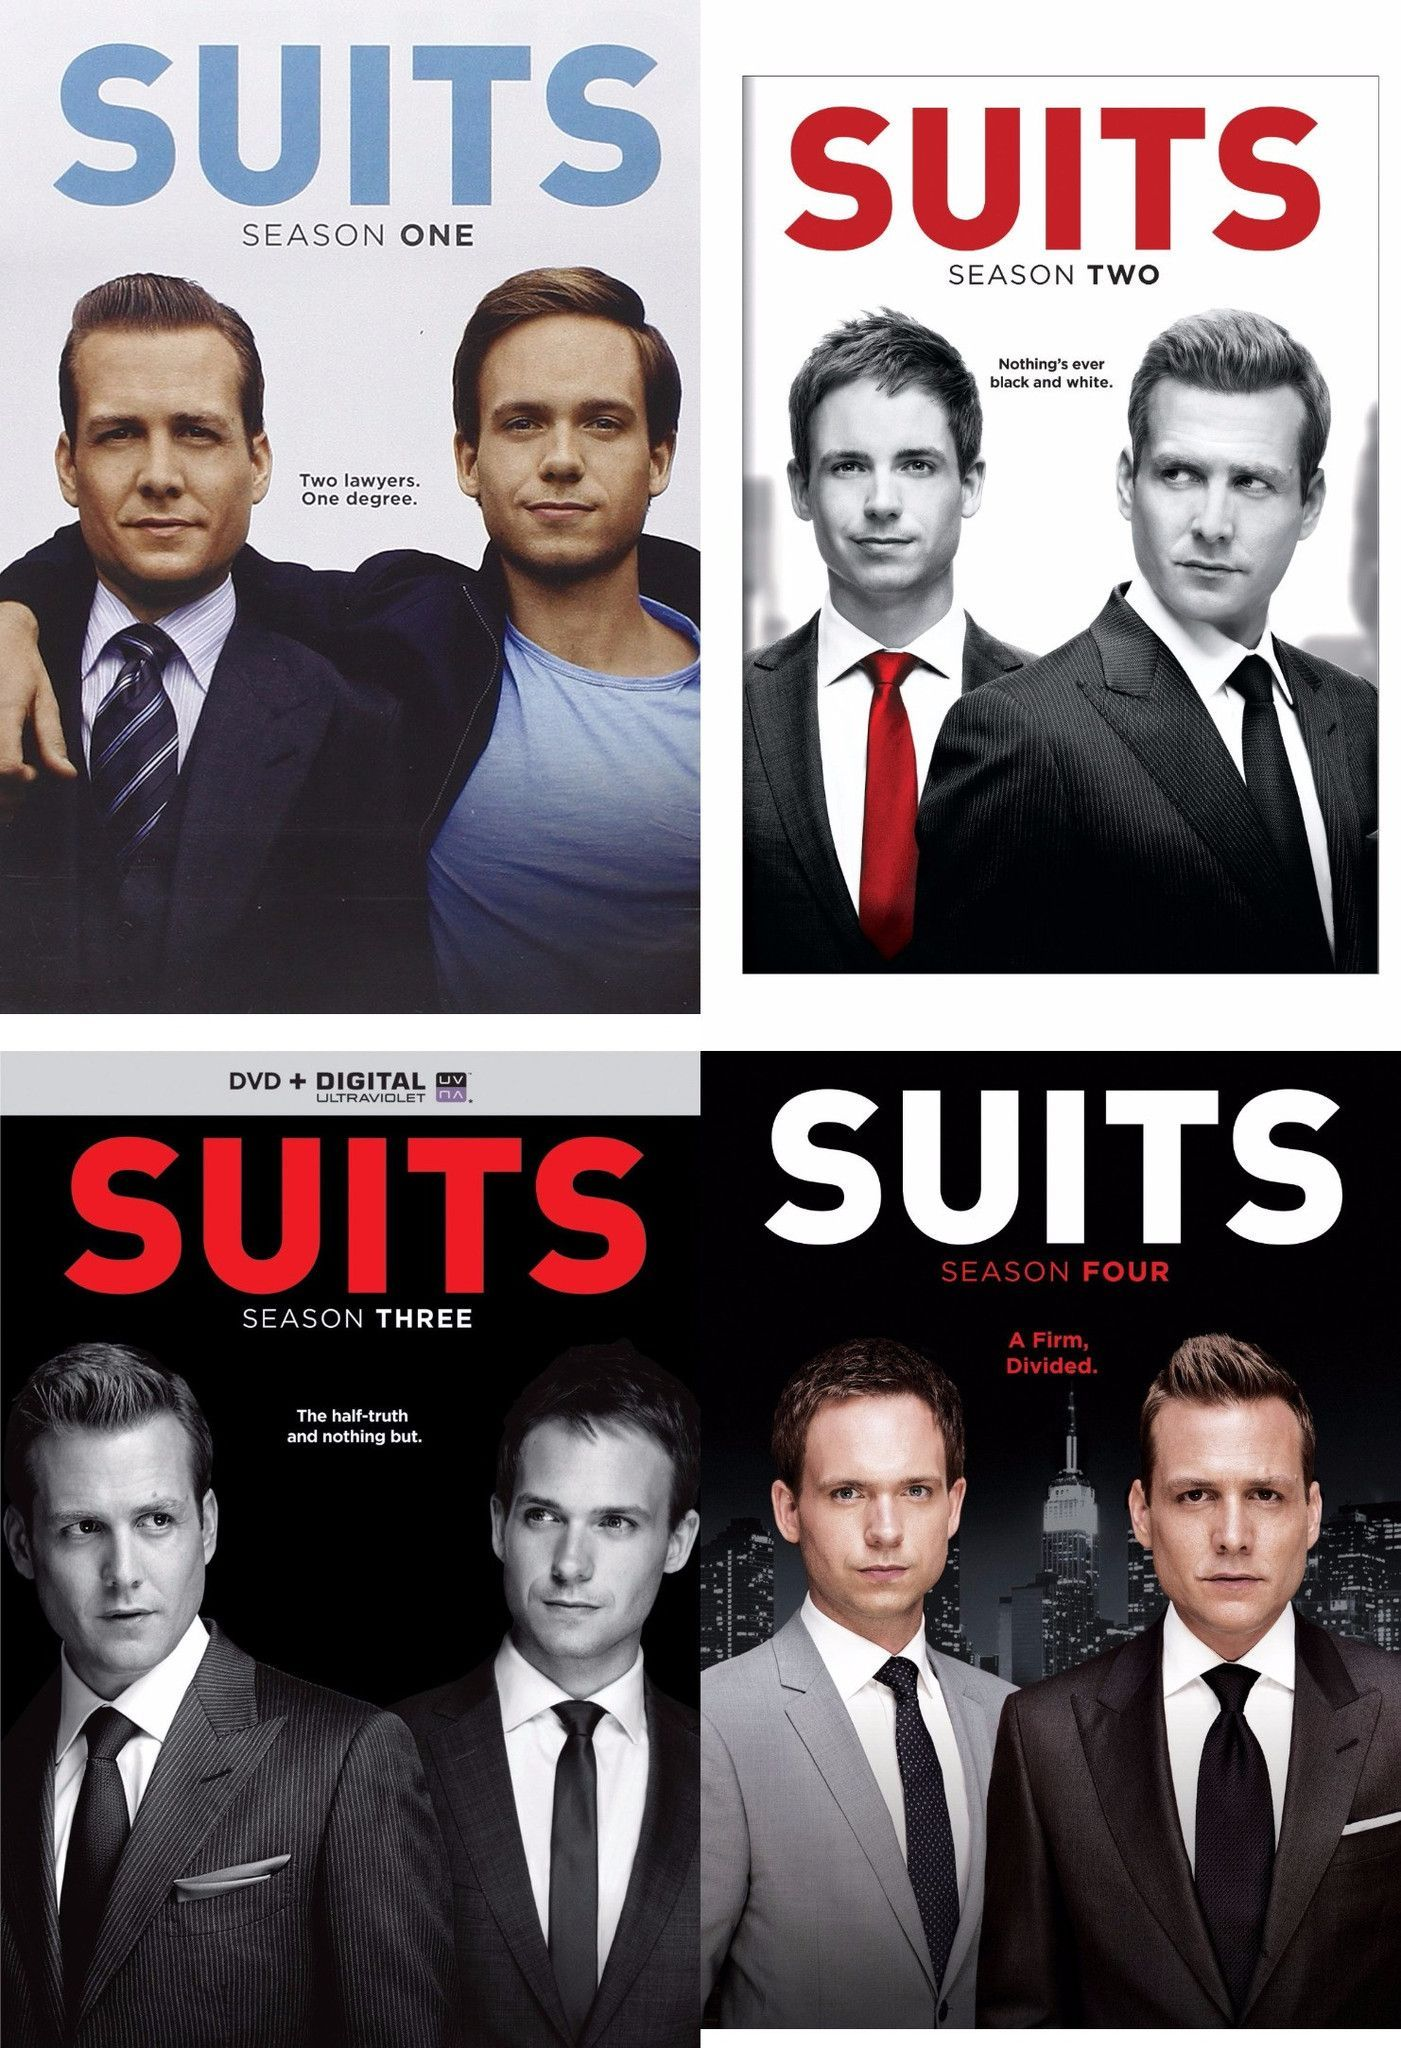 suits tv series seasons 1 9 dvd set suits tv series suits tv shows suits season suits tv series seasons 1 9 dvd set